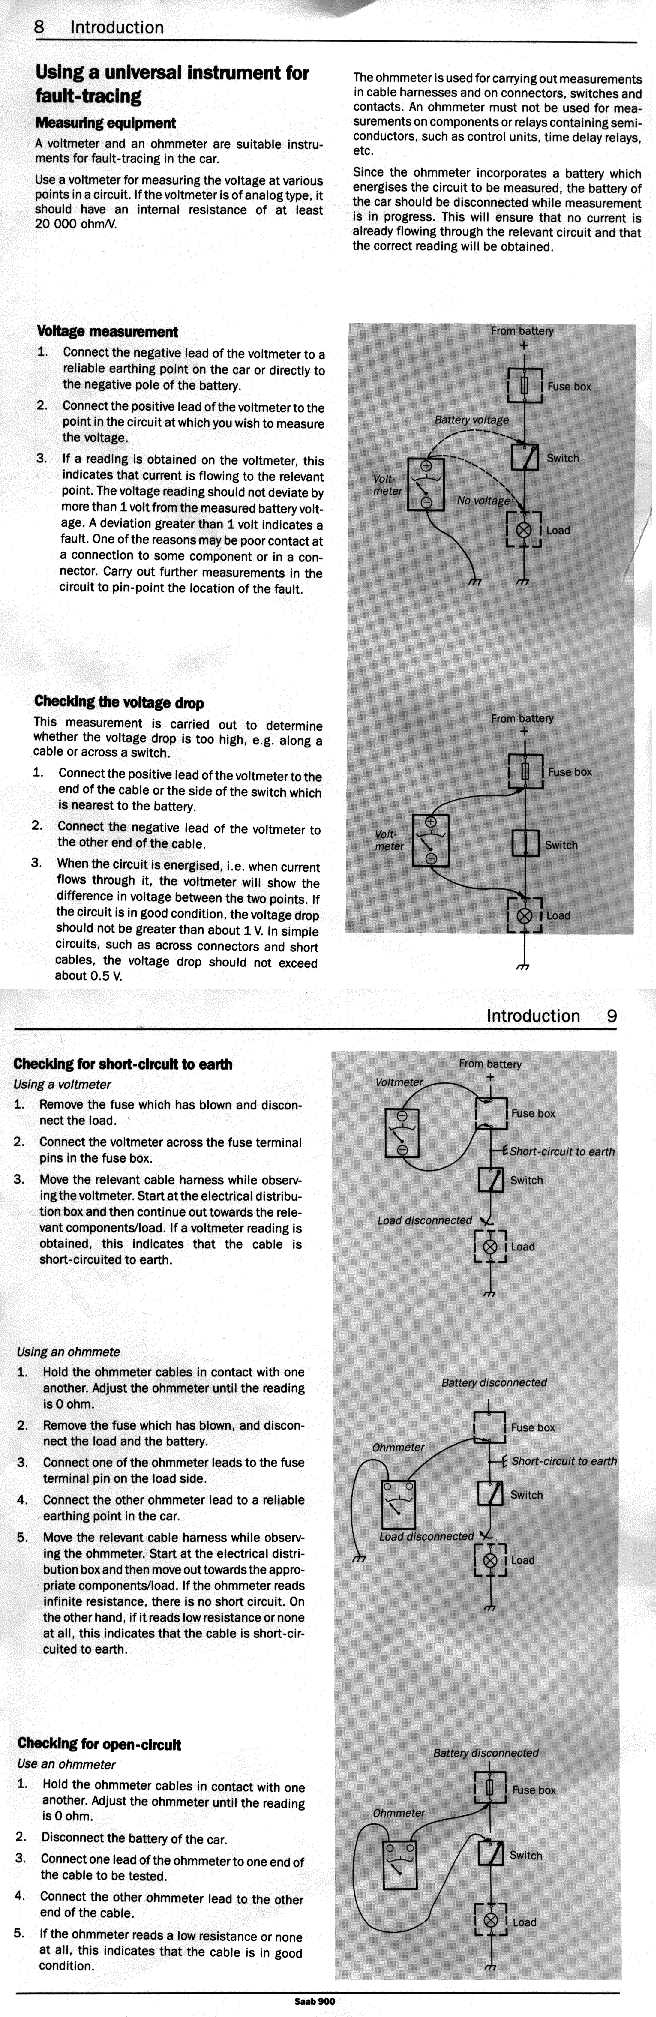 Saab 900 Fuse Diagram Automotive Wiring Electrical Diagrams 89 90 Rh Townsendimports Com Box Layout